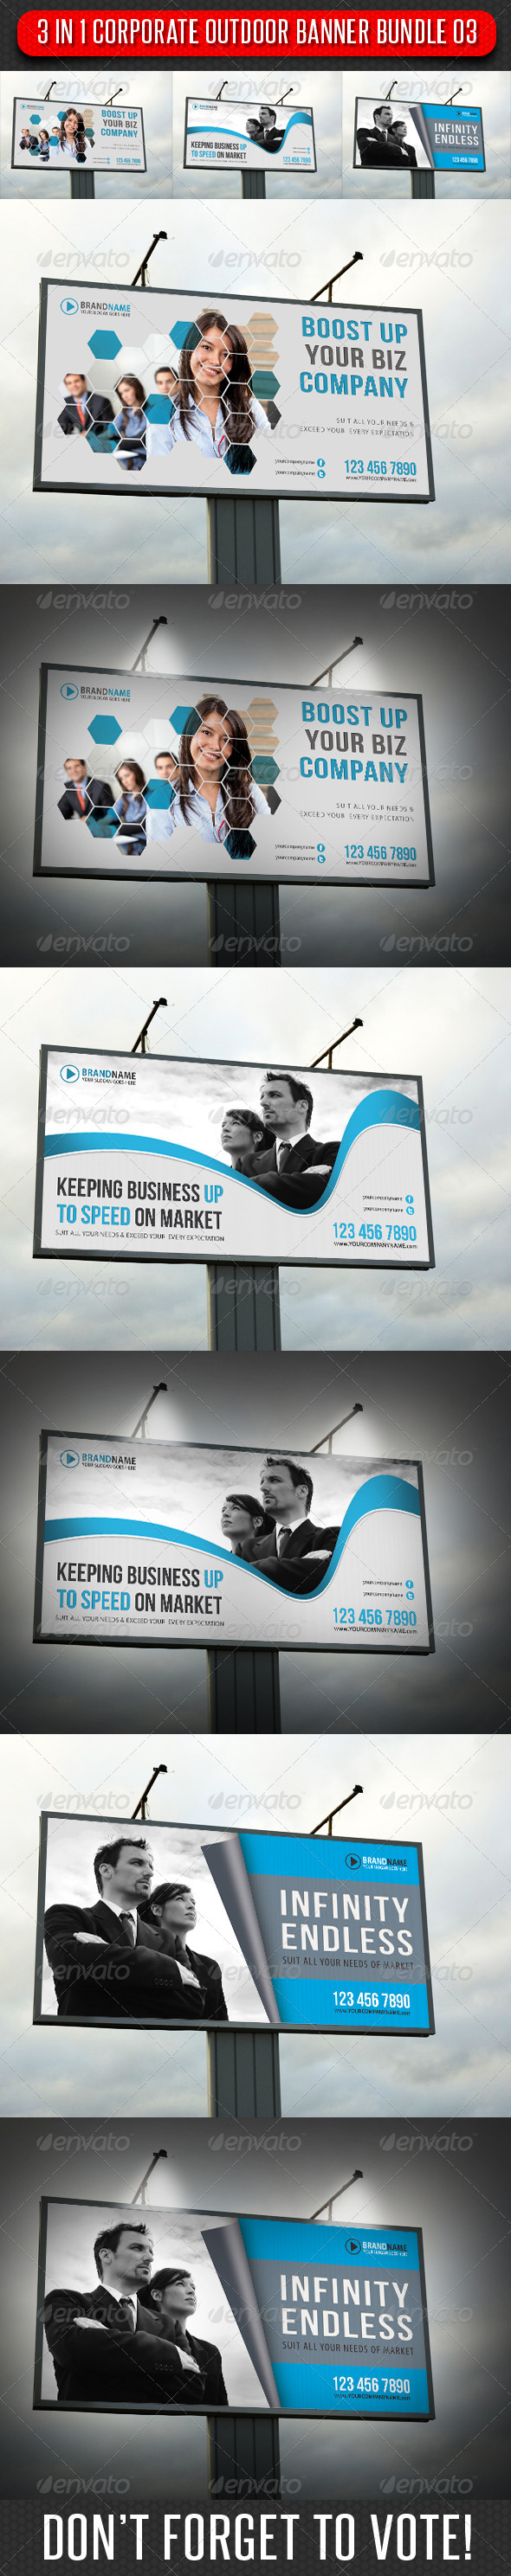 3 in 1 Corporate Outdoor Banner Bundle 03 - Signage Print Templates